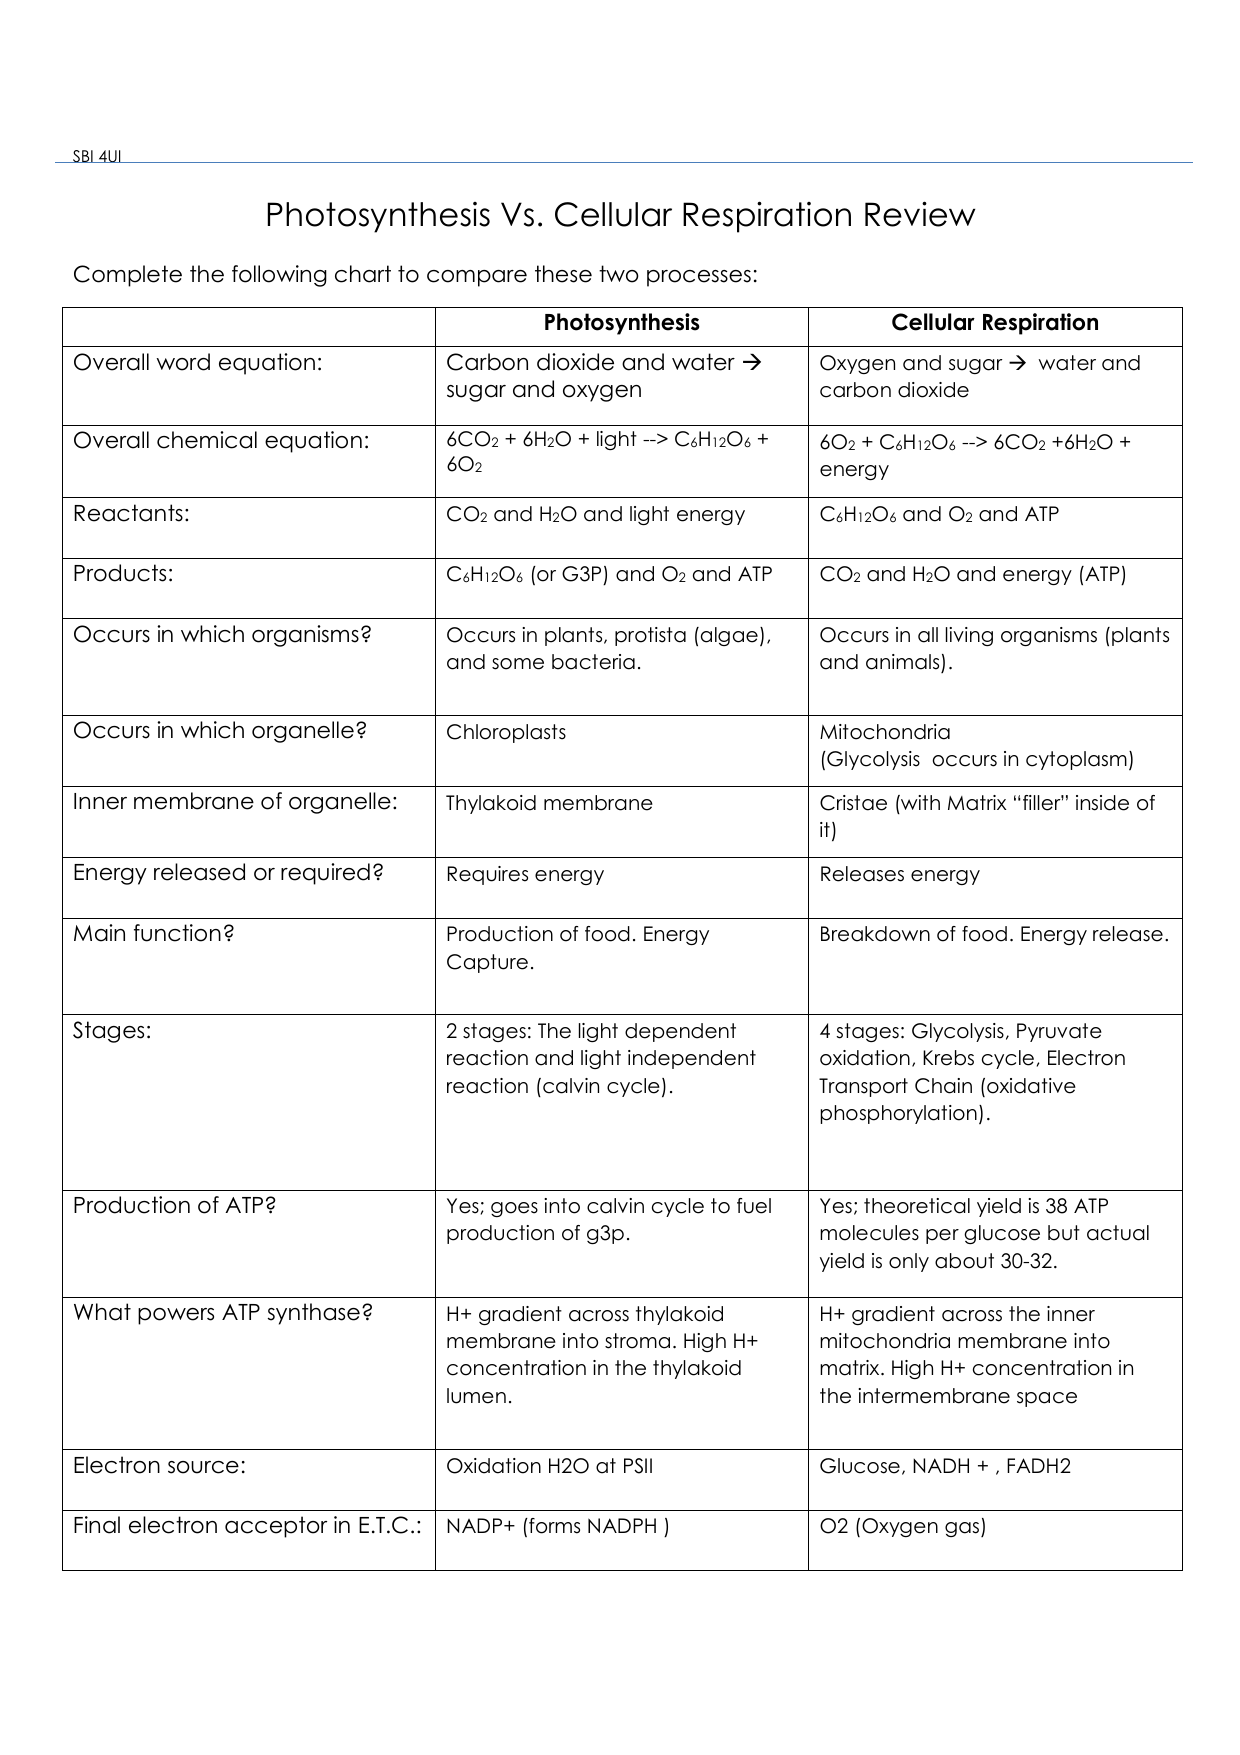 Photosynthesis Vs. Cell Respiration worksheet answers